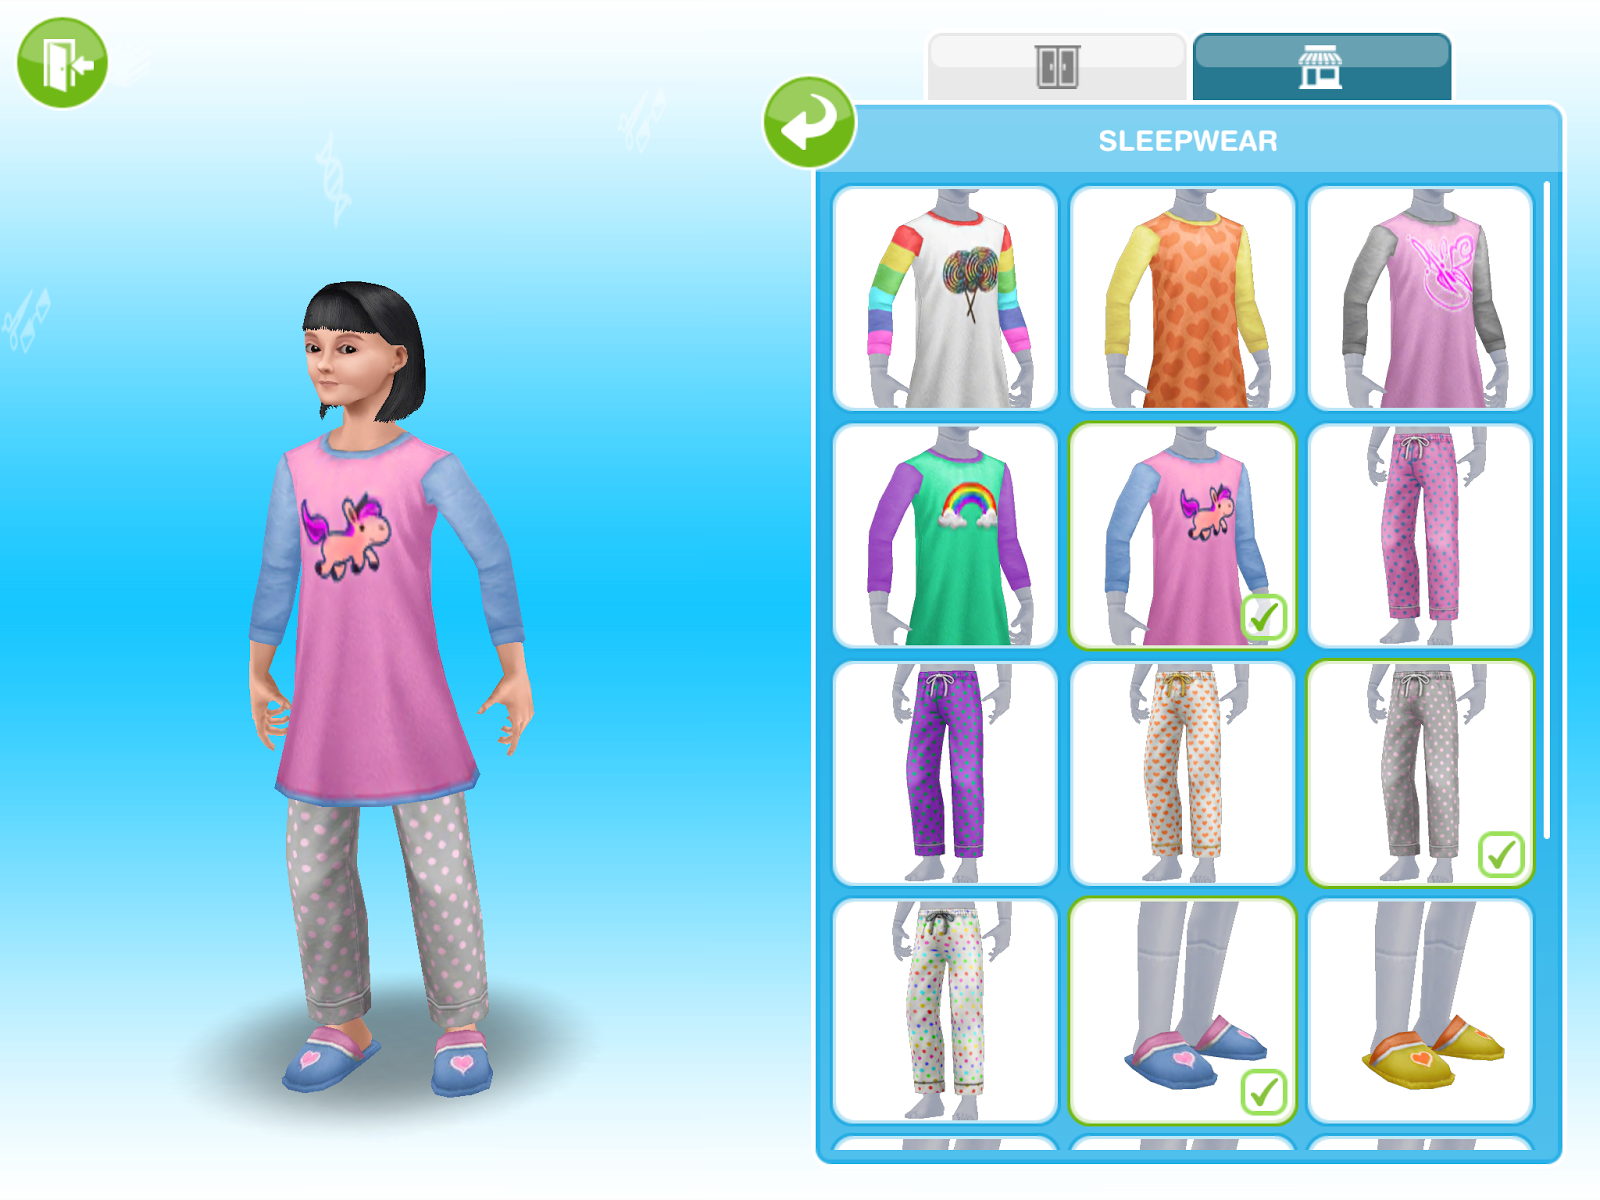 Missy's Sims and Stuff: The Sims Freeplay ~ Sleepwear Event